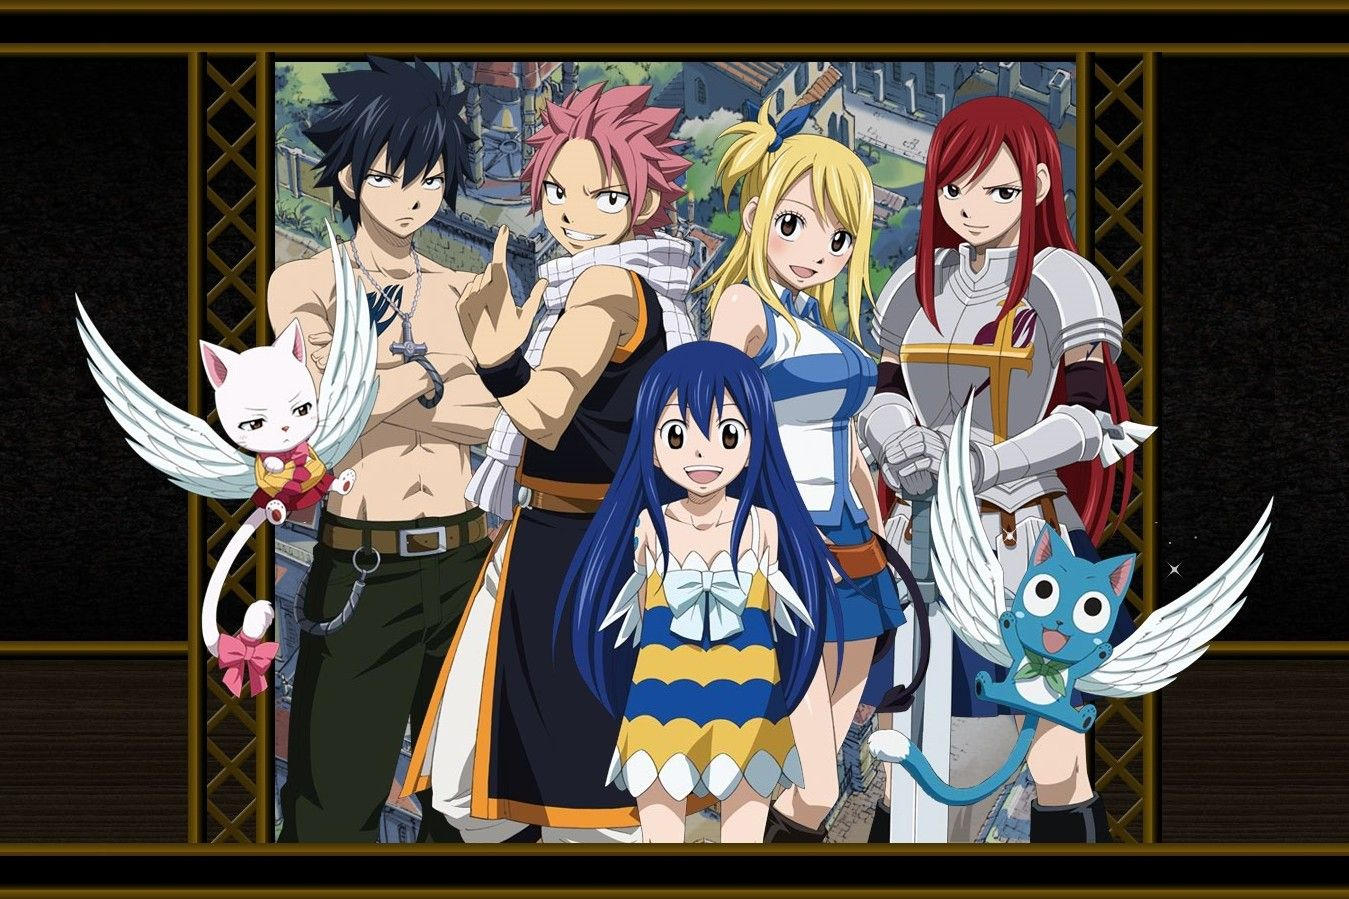 Fairy Tail Wallpaper For Mac Download Fanarts Wallpaper For Fairy Tail And Enjoy It On Your Iphon Fairy Tail Anime Fairy Tail Wallpapers Fairy Tail Characters